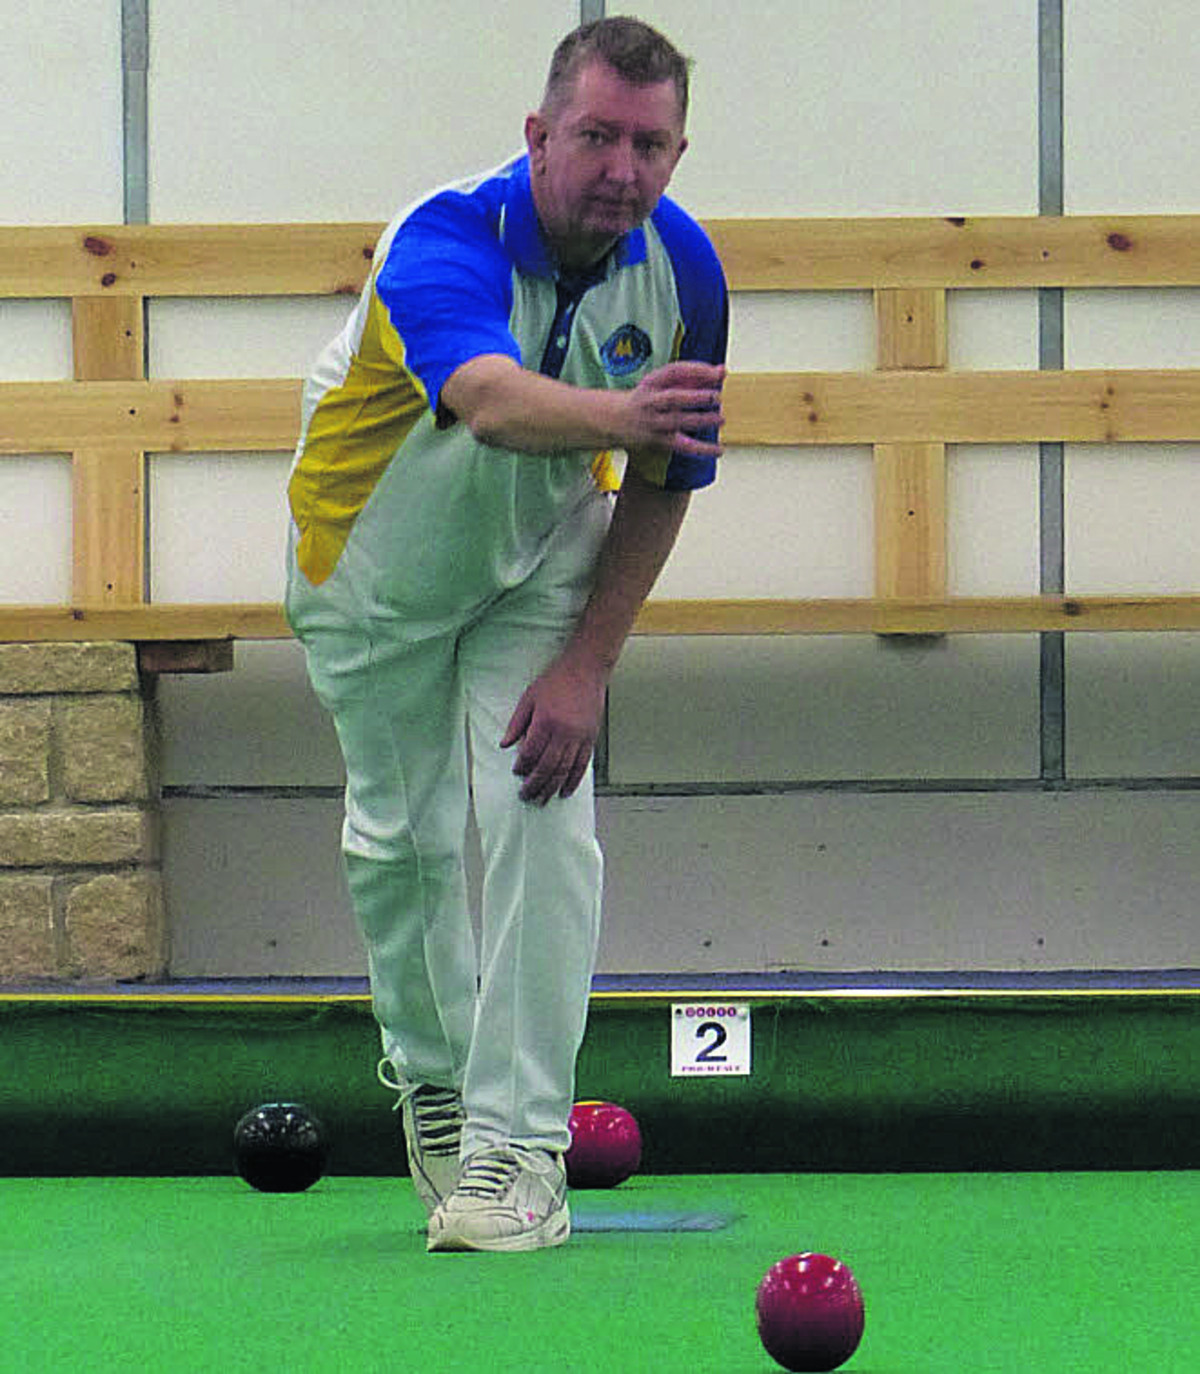 Danny Dennison, from the Torquay United club, is ranked fourth, the highest Planetbowls player at the Cl